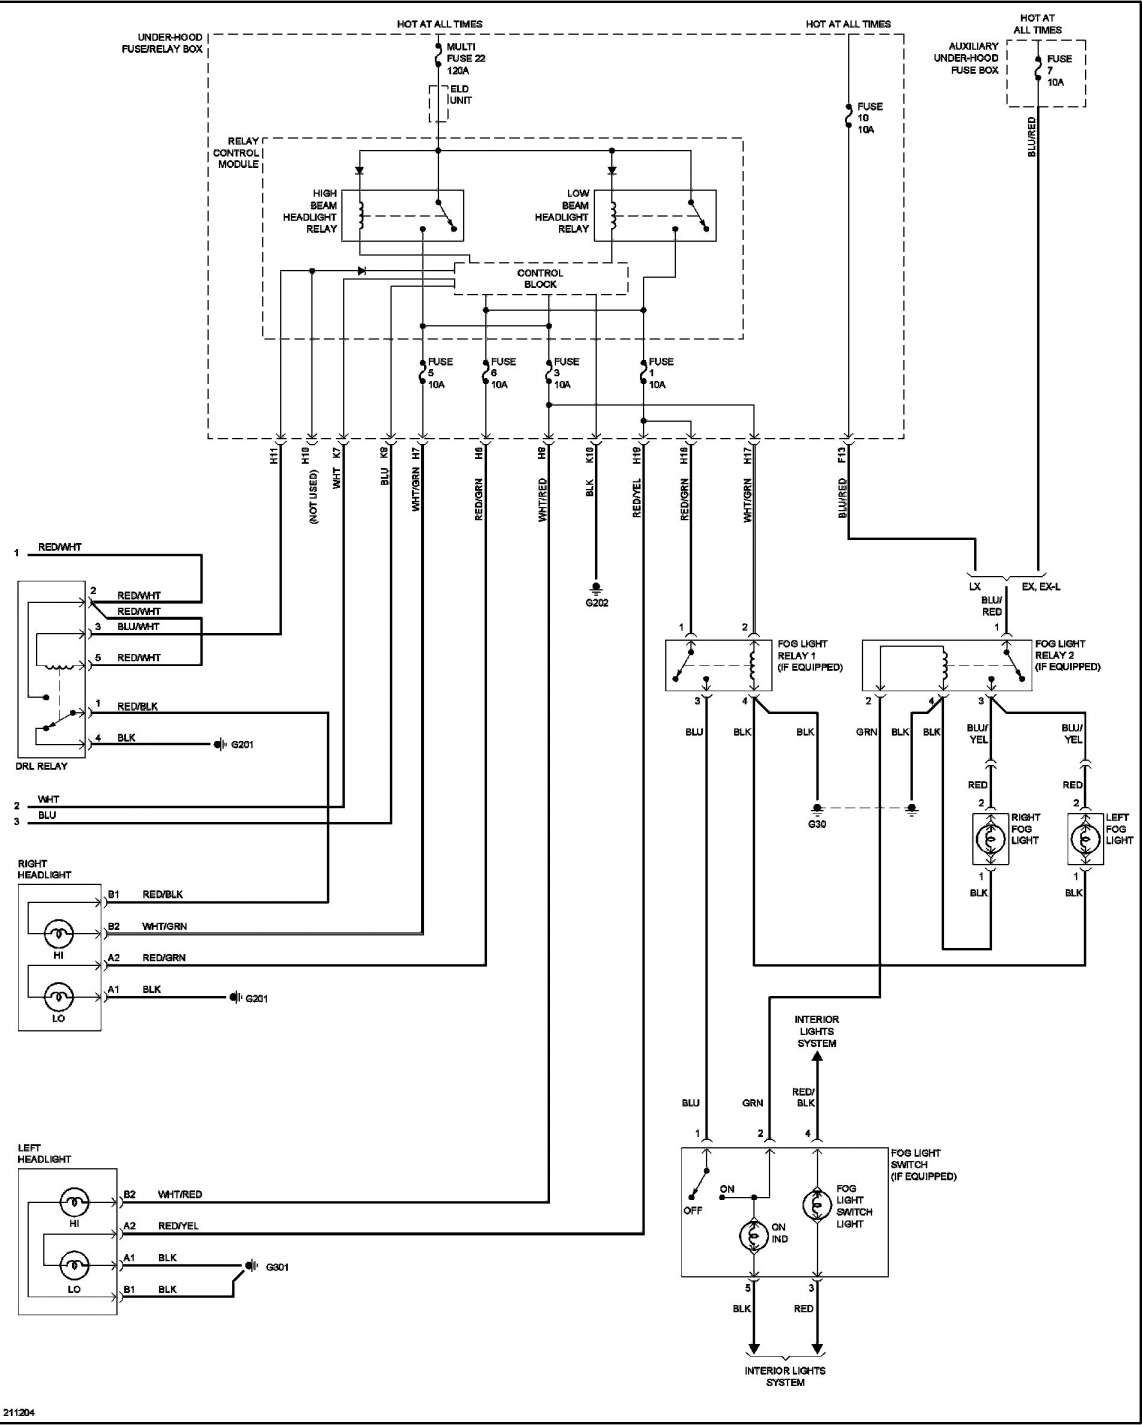 15 95 Honda Civic Engine Wiring Diagram Engine Diagram Wiringg Net Honda Civic Engine Honda Civic Honda Odyssey